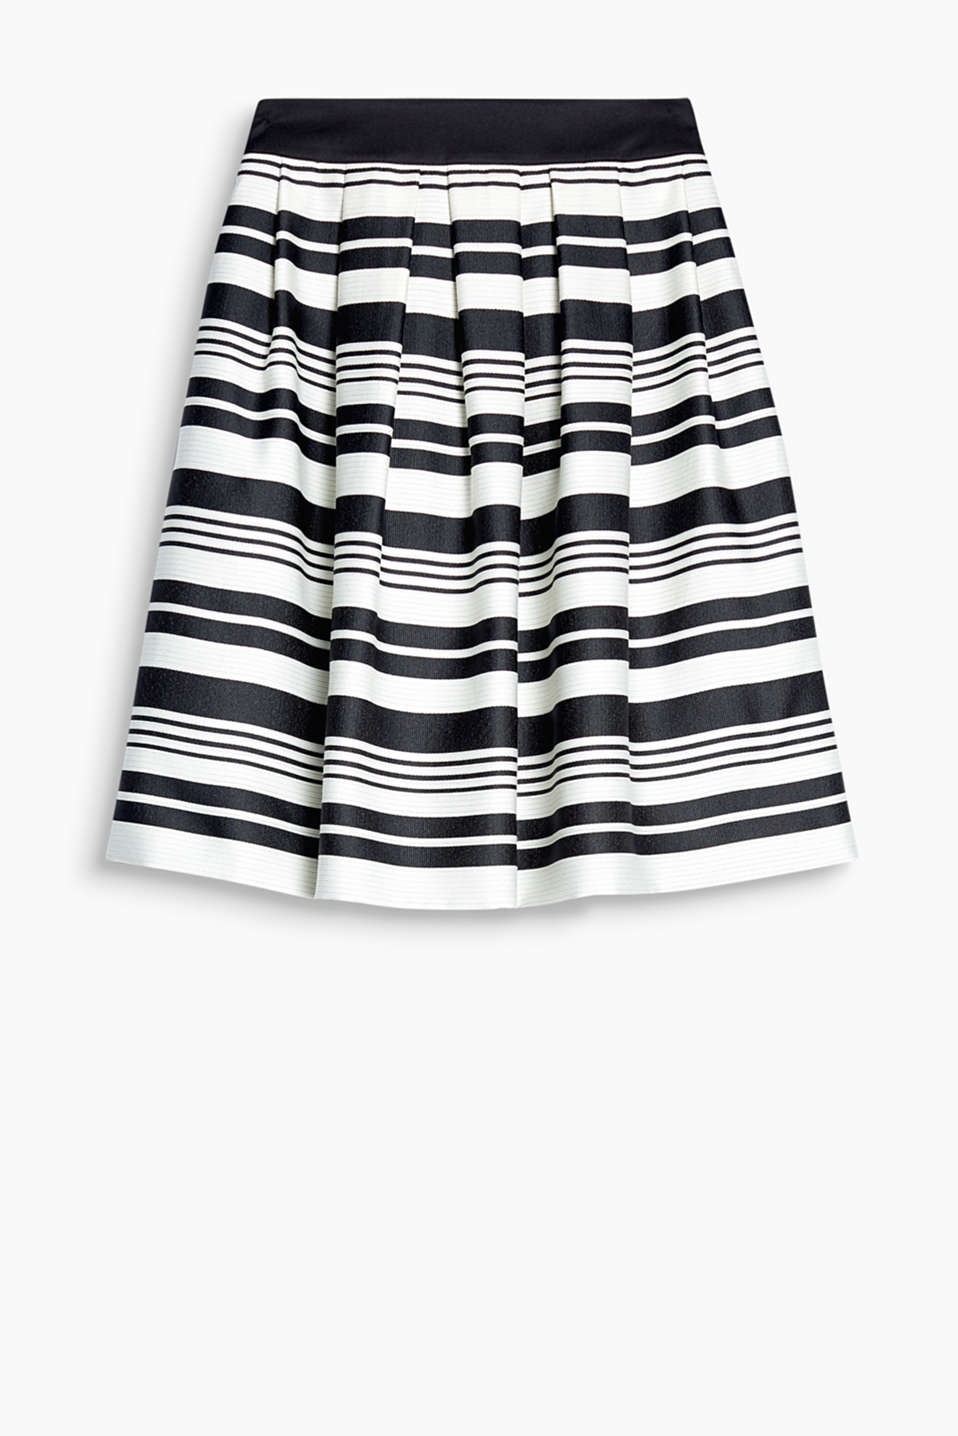 This skirt delivers chic graphic style with its delicate shimmer and stripes in various widths.